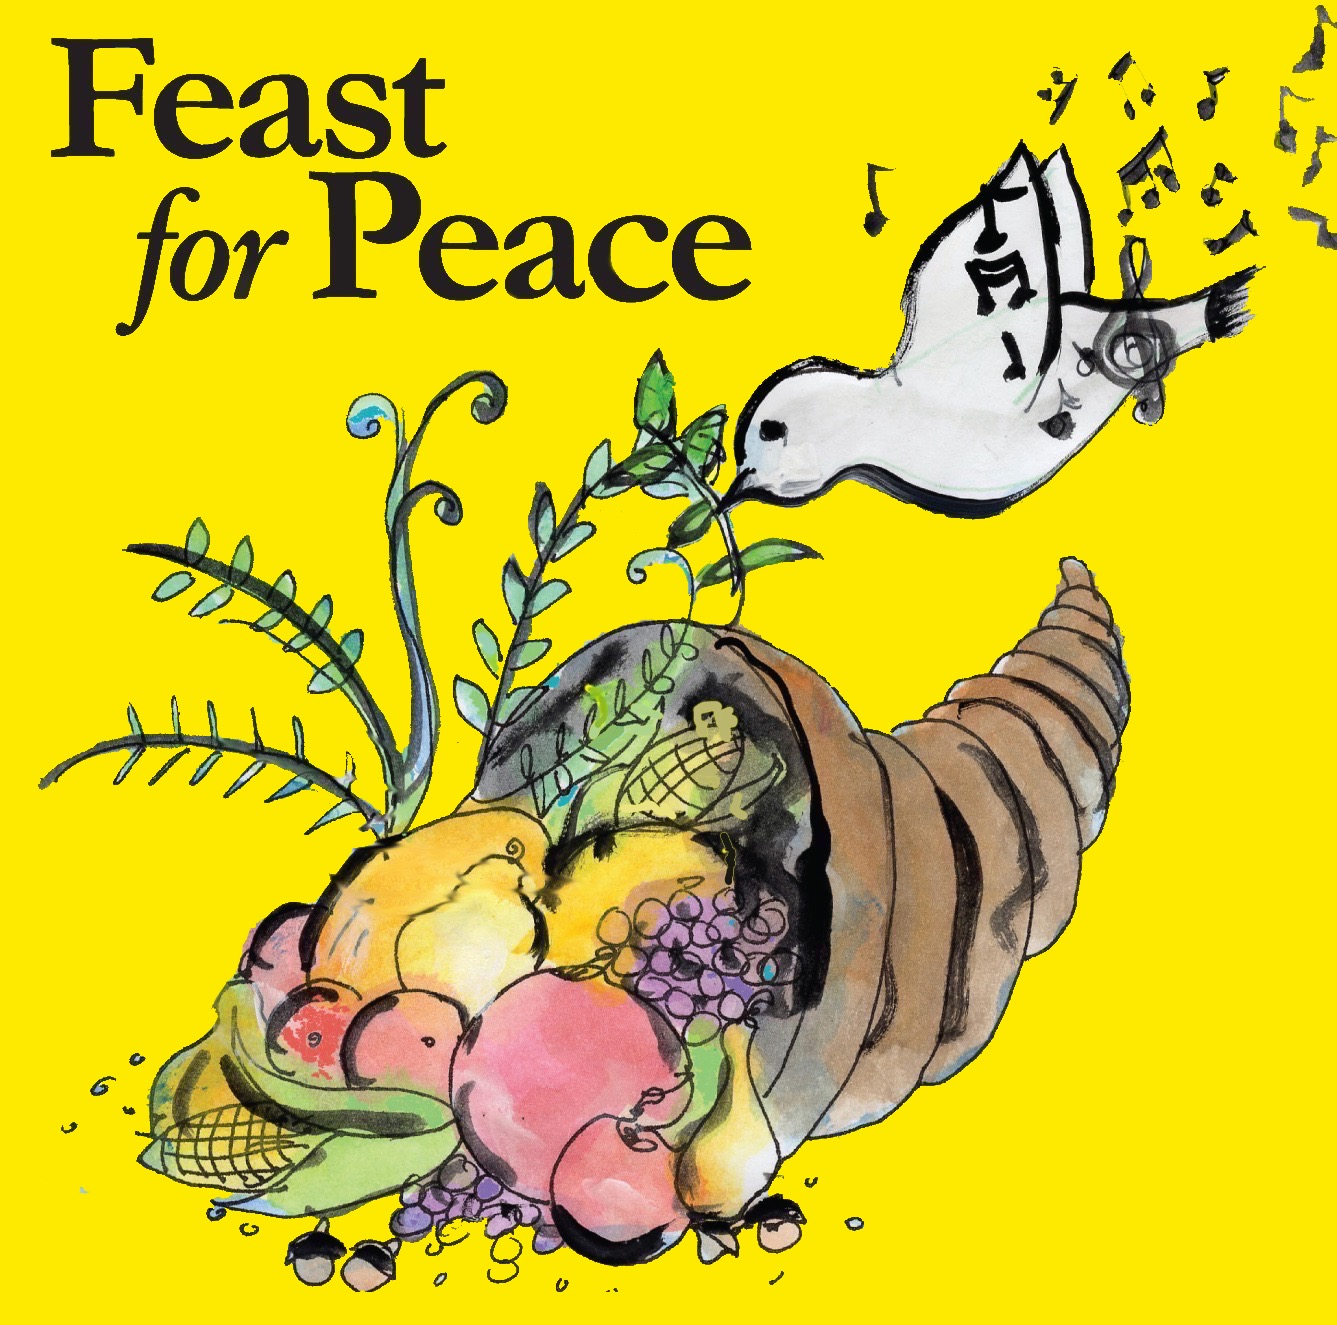 Feast for Peace, Saturday 28 March 2020 – 5:30 – 9 pm